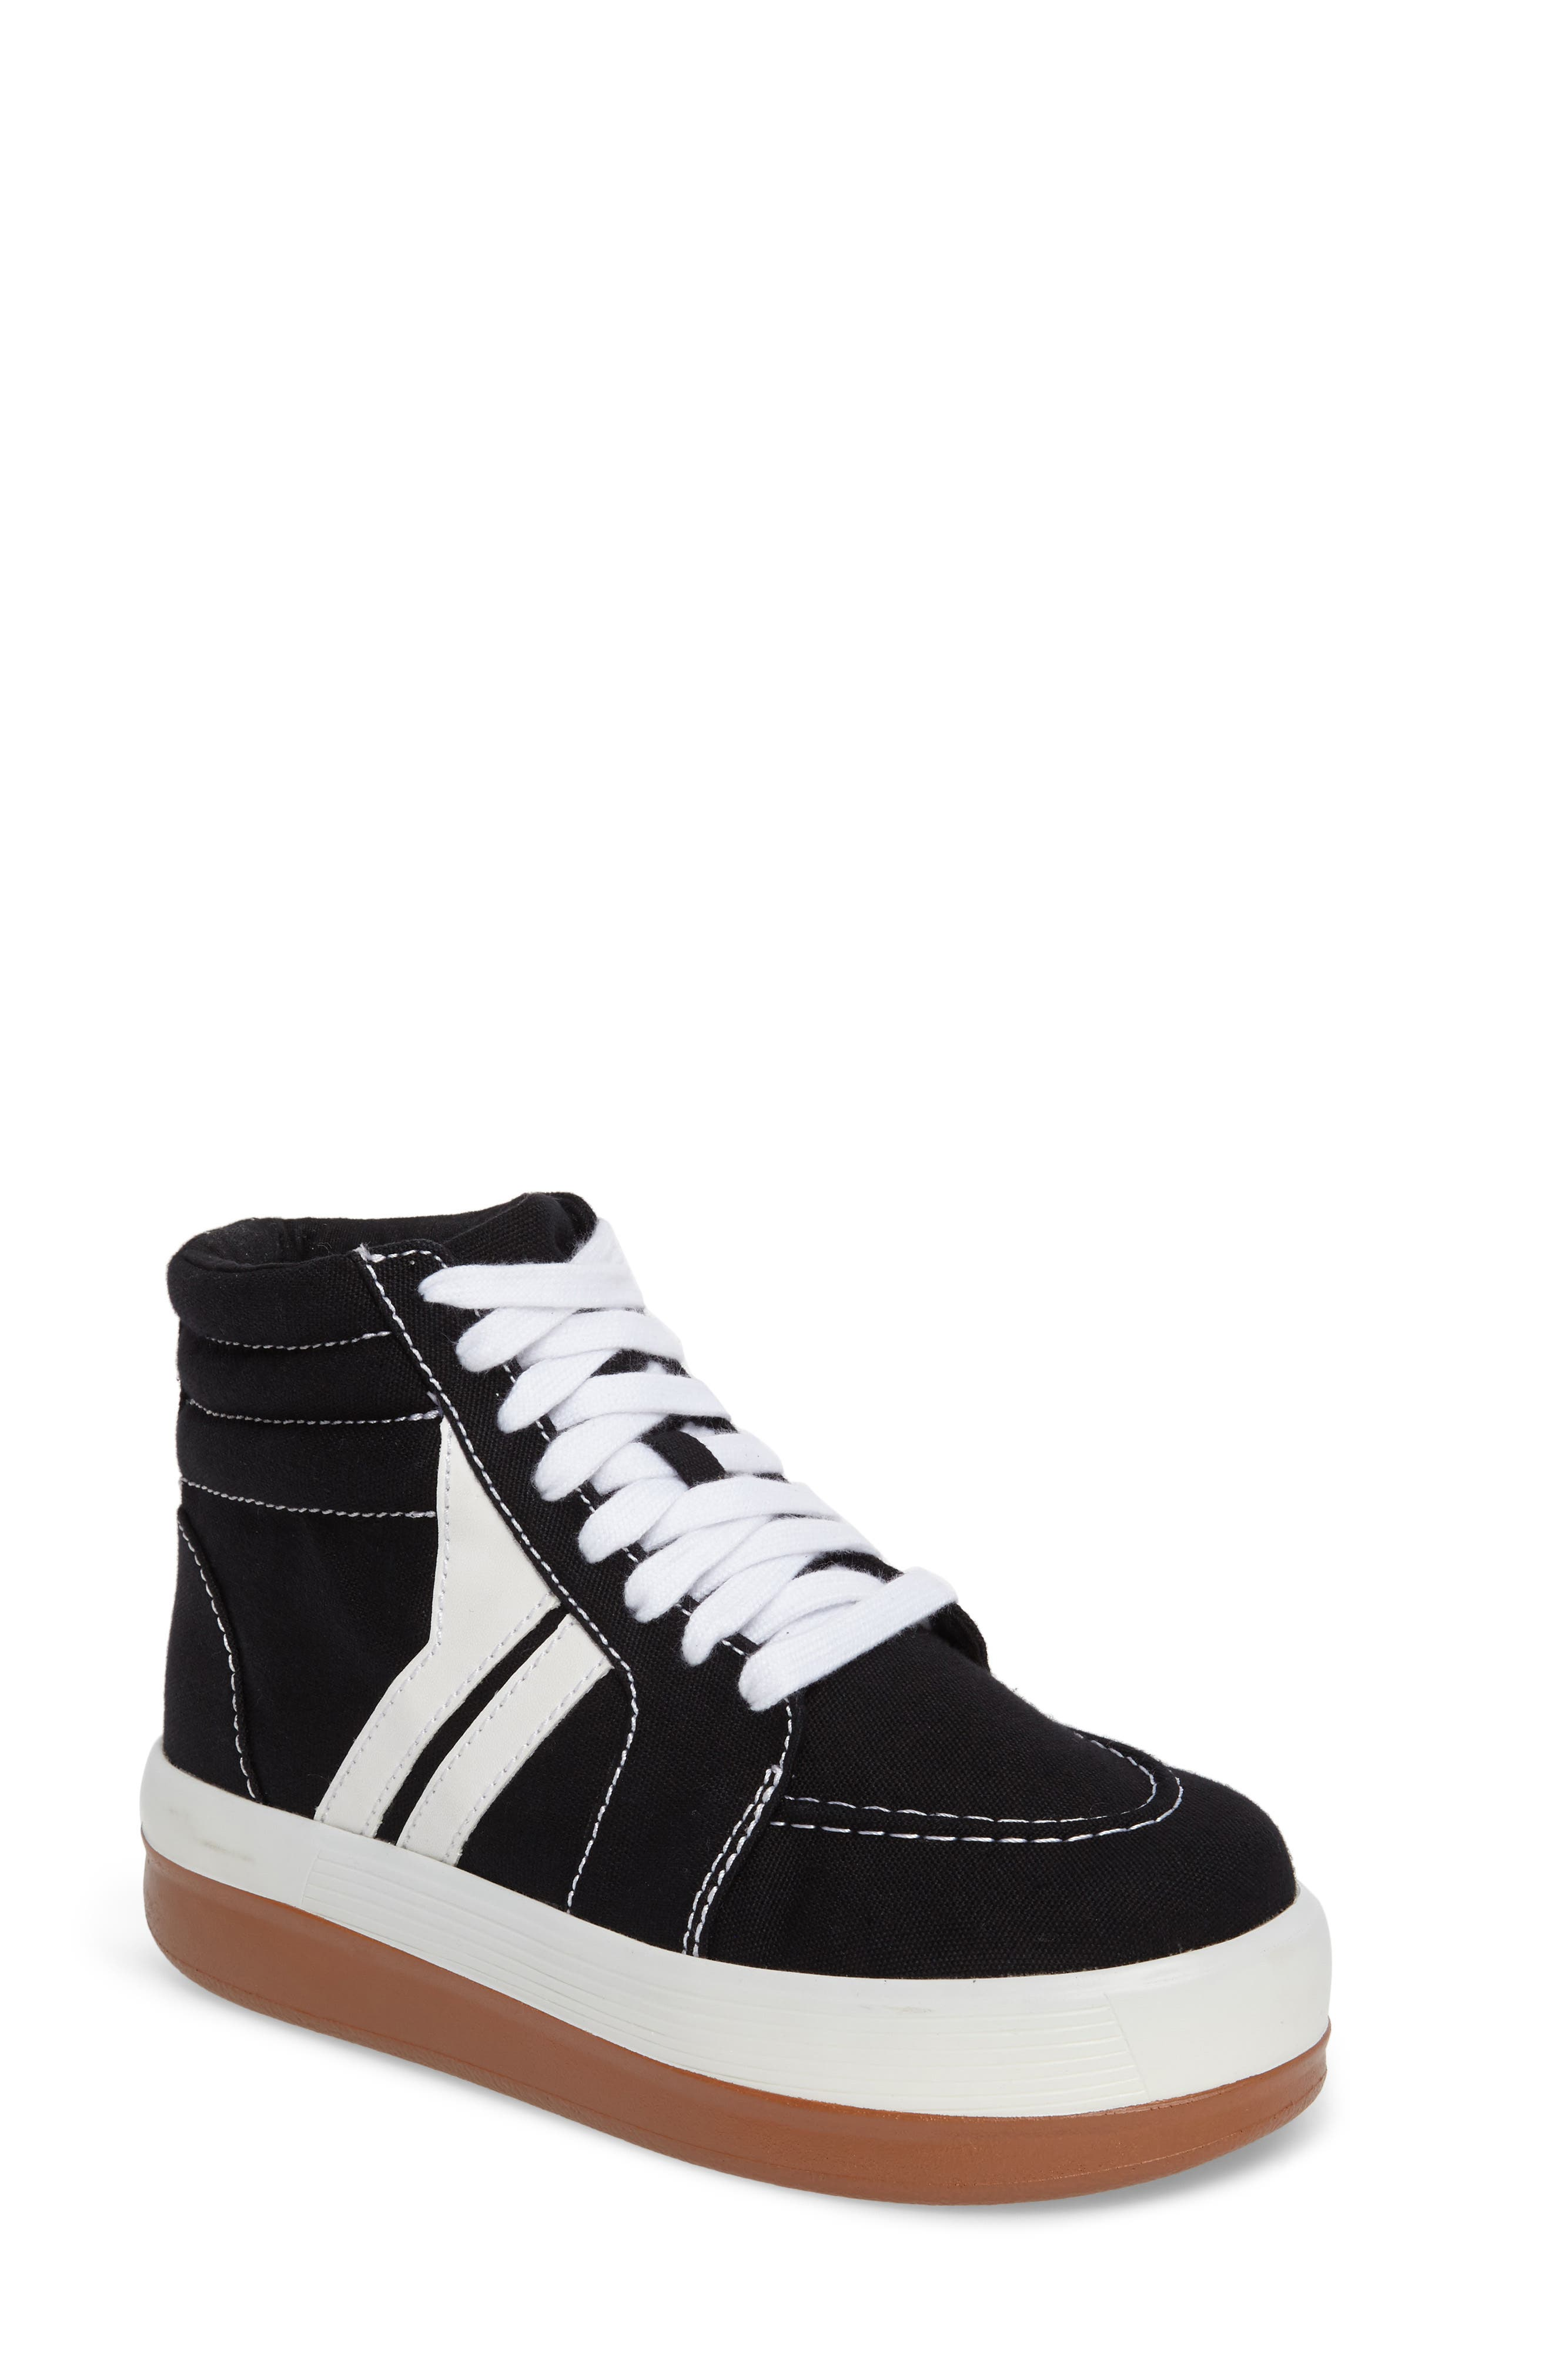 Grind High Top Sneaker,                         Main,                         color, 001